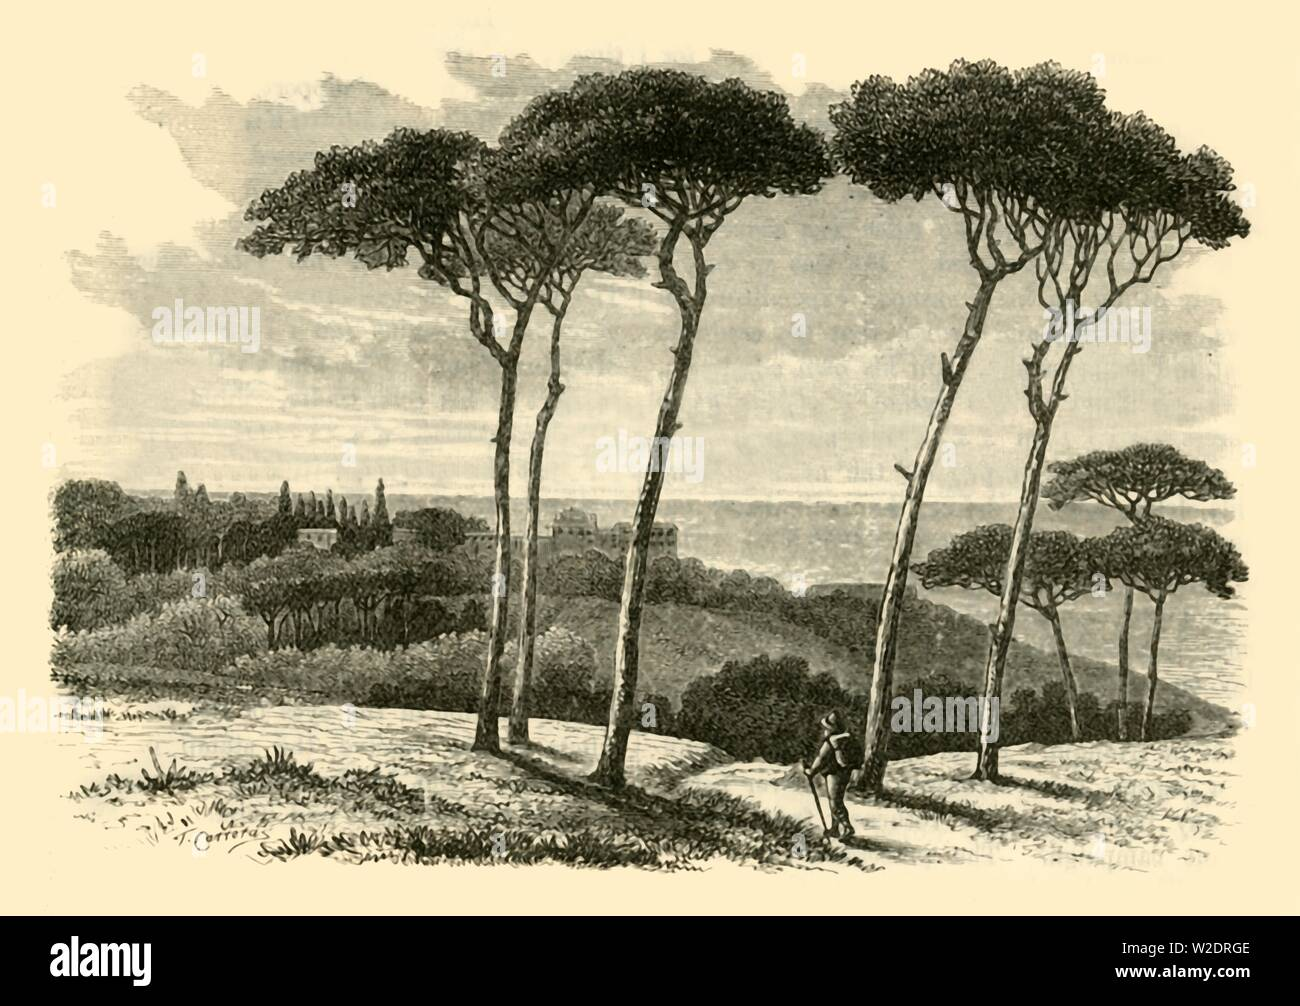 """'Tusculum', 1890. From """"Cassell's Illustrated Universal History Vol. II - Rome"""", by Edmund Ollier. [Cassell and Company, Limited, London, Paris and Melbourne, 1890] - Stock Image"""